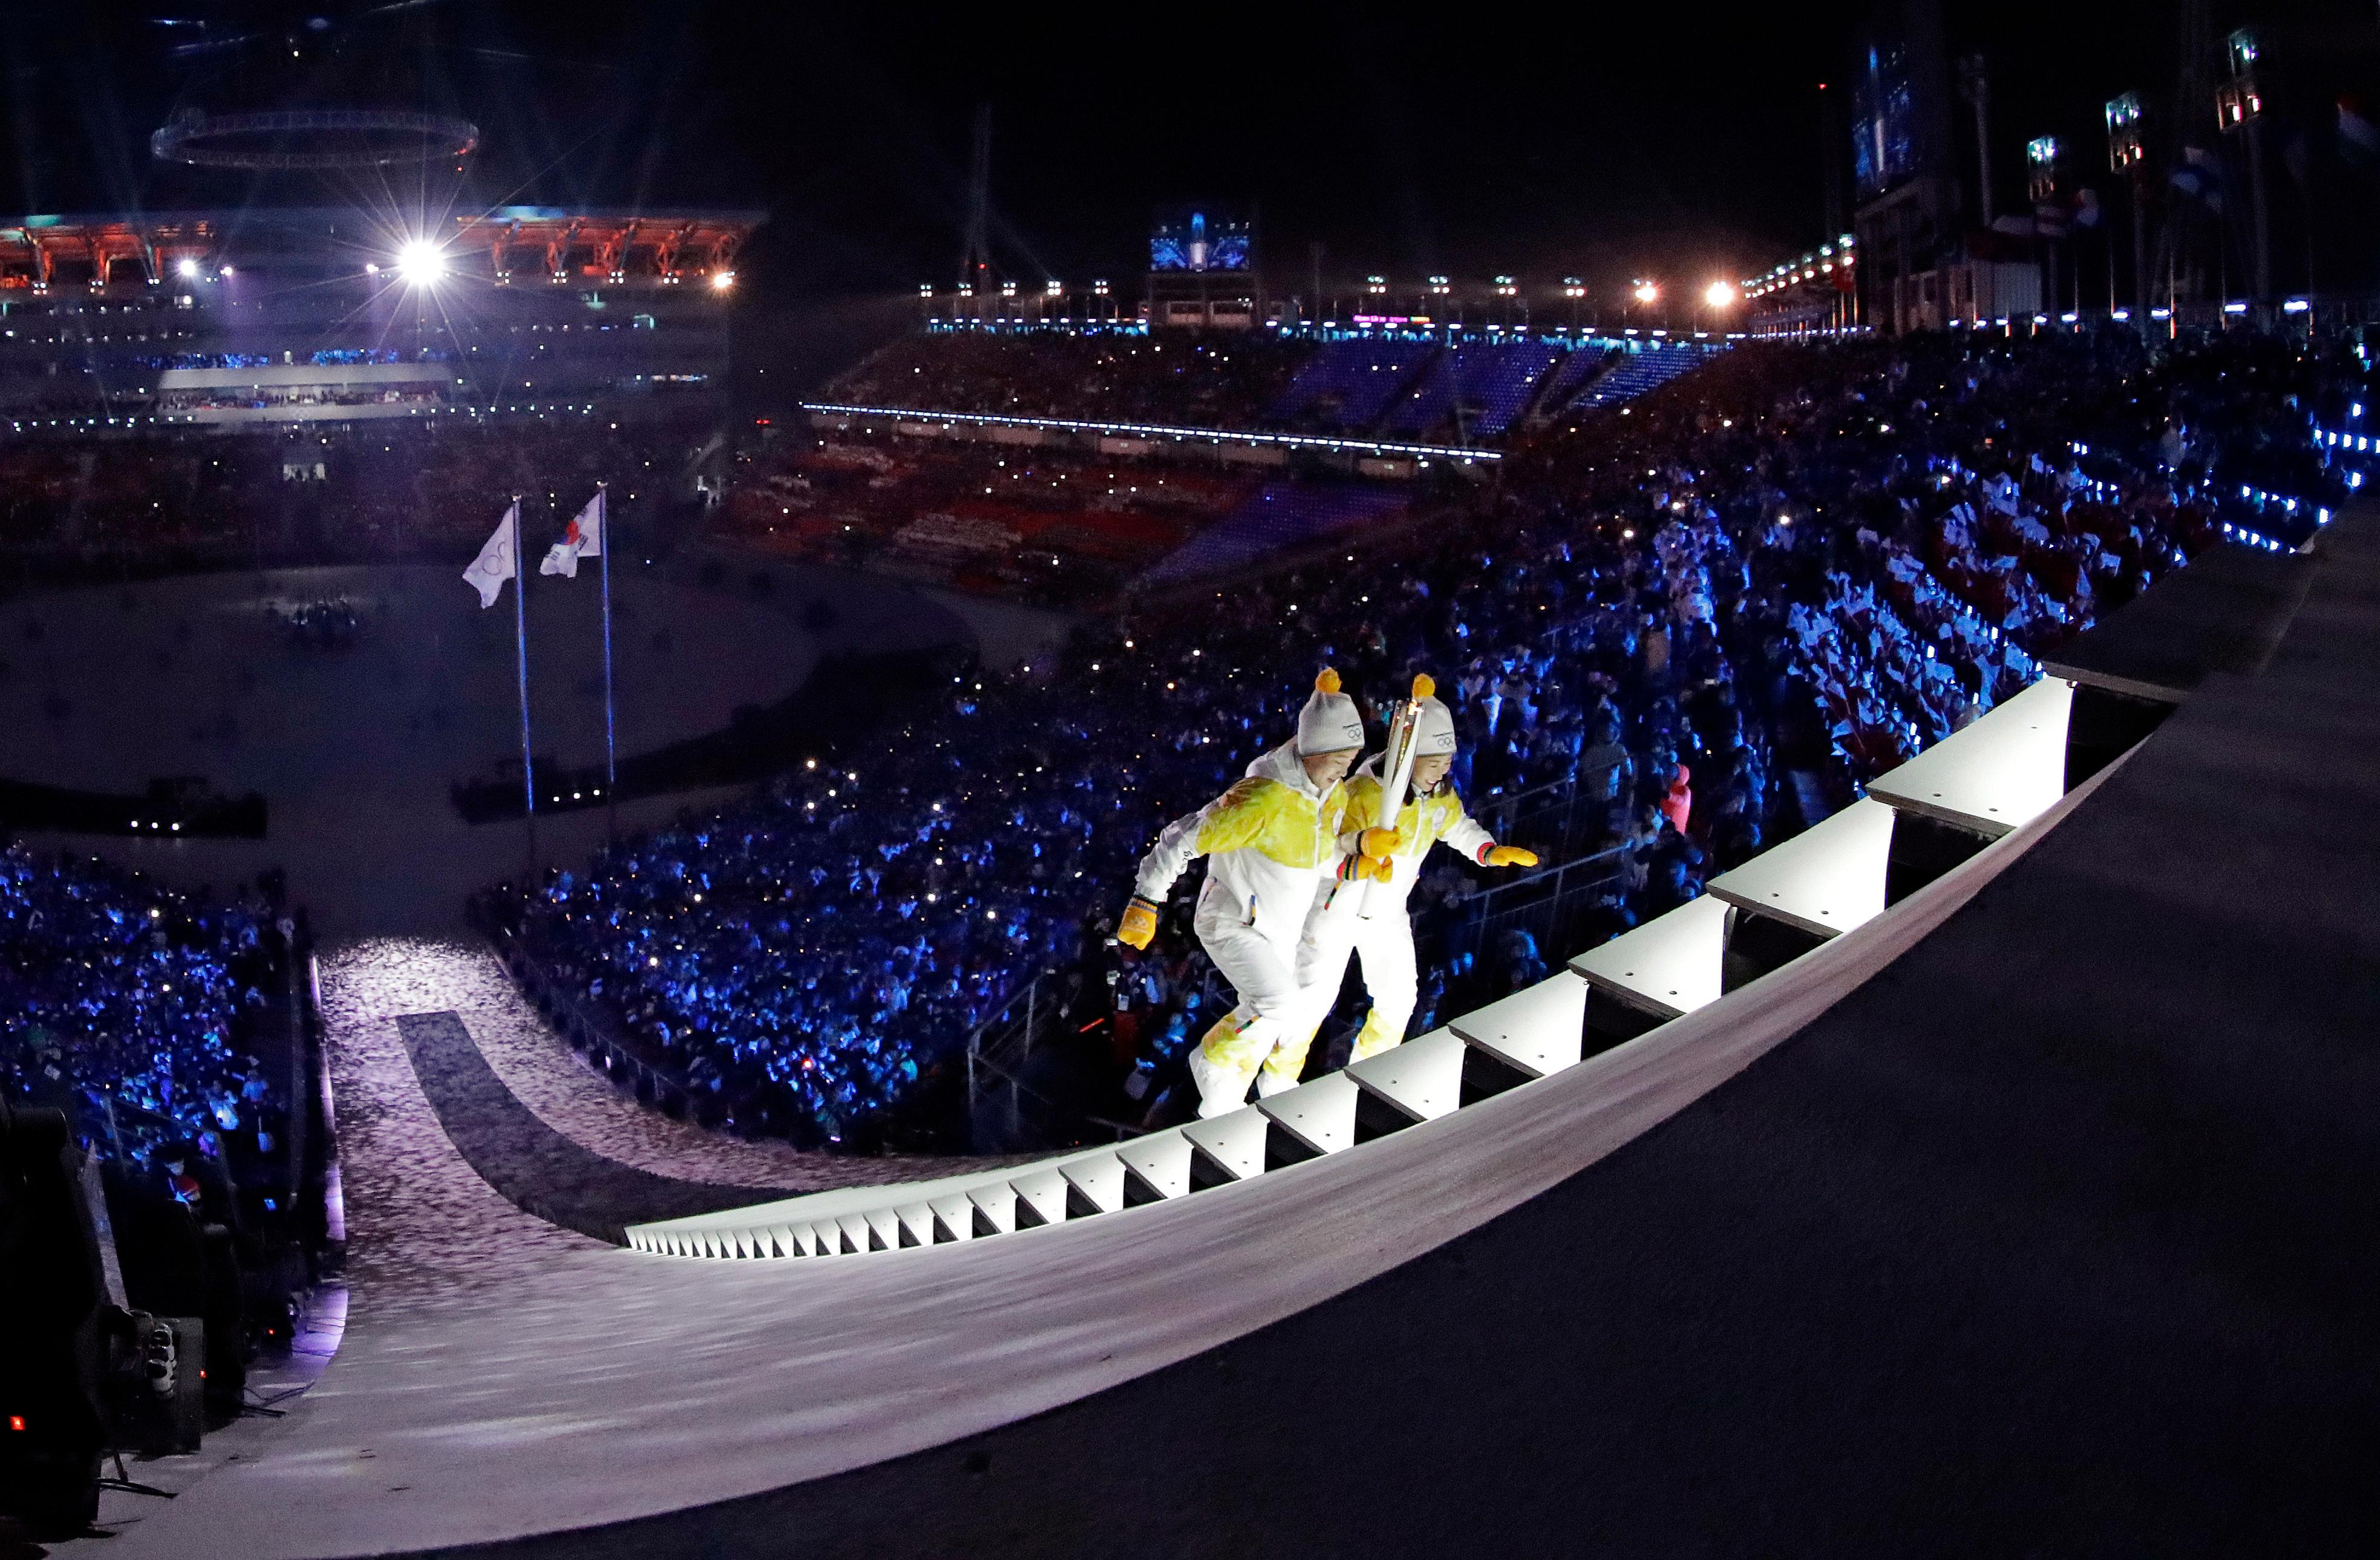 North Korea's Jong Su Hyon, left, and South Korea's Park Jong-ah carry the torch during the opening ceremony of the 2018 Winter Olympics in Pyeongchang, South Korea, Friday, Feb. 9, 2018. (AP Photo/David J. Phillip,Pool)